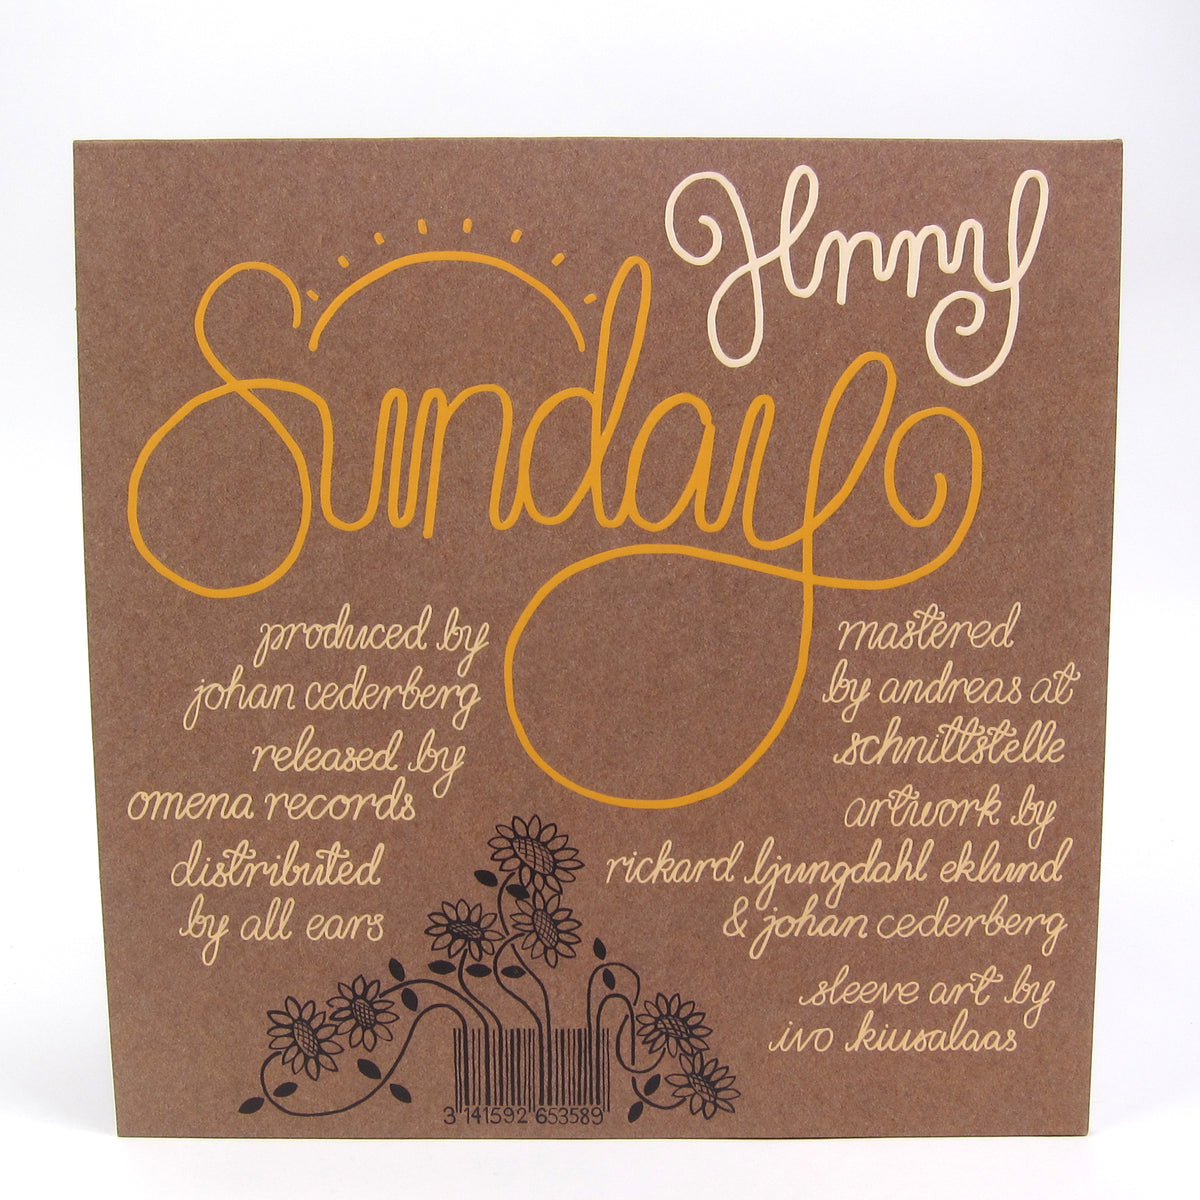 HNNY: Sunday Vinyl LP